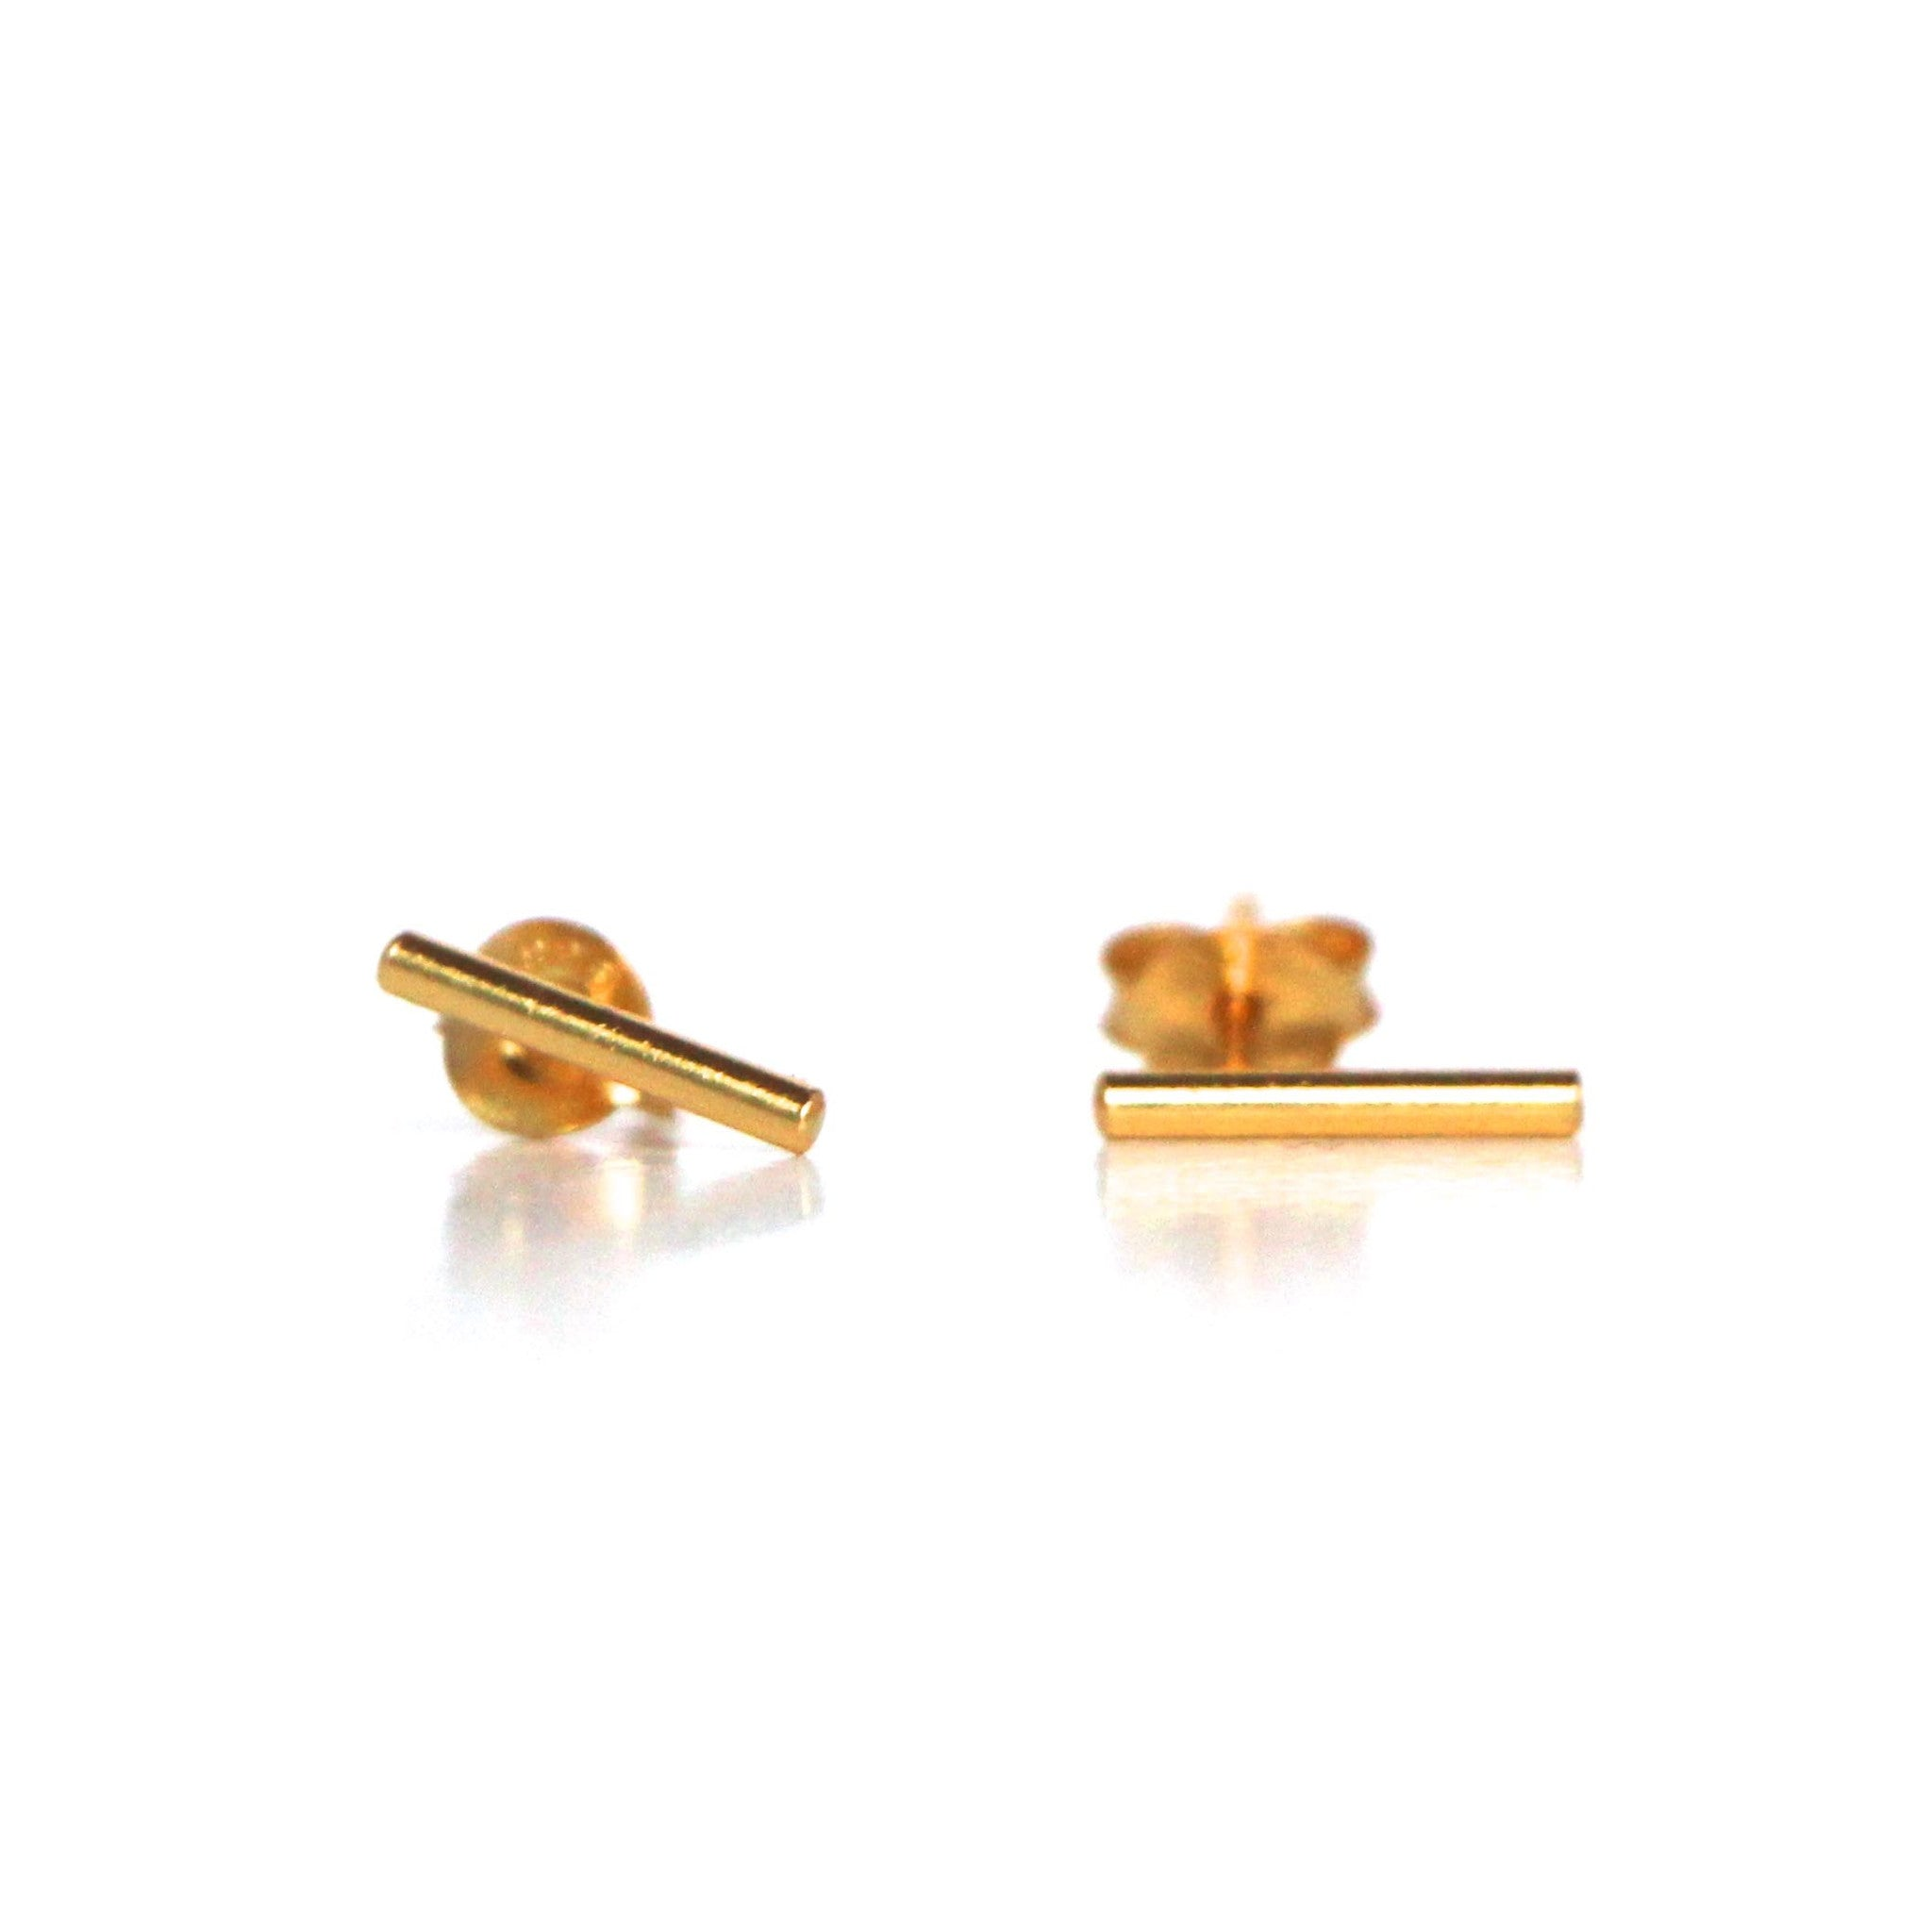 etsy deals line stud bar shop great minimalist earrings studs gold louiseleder on